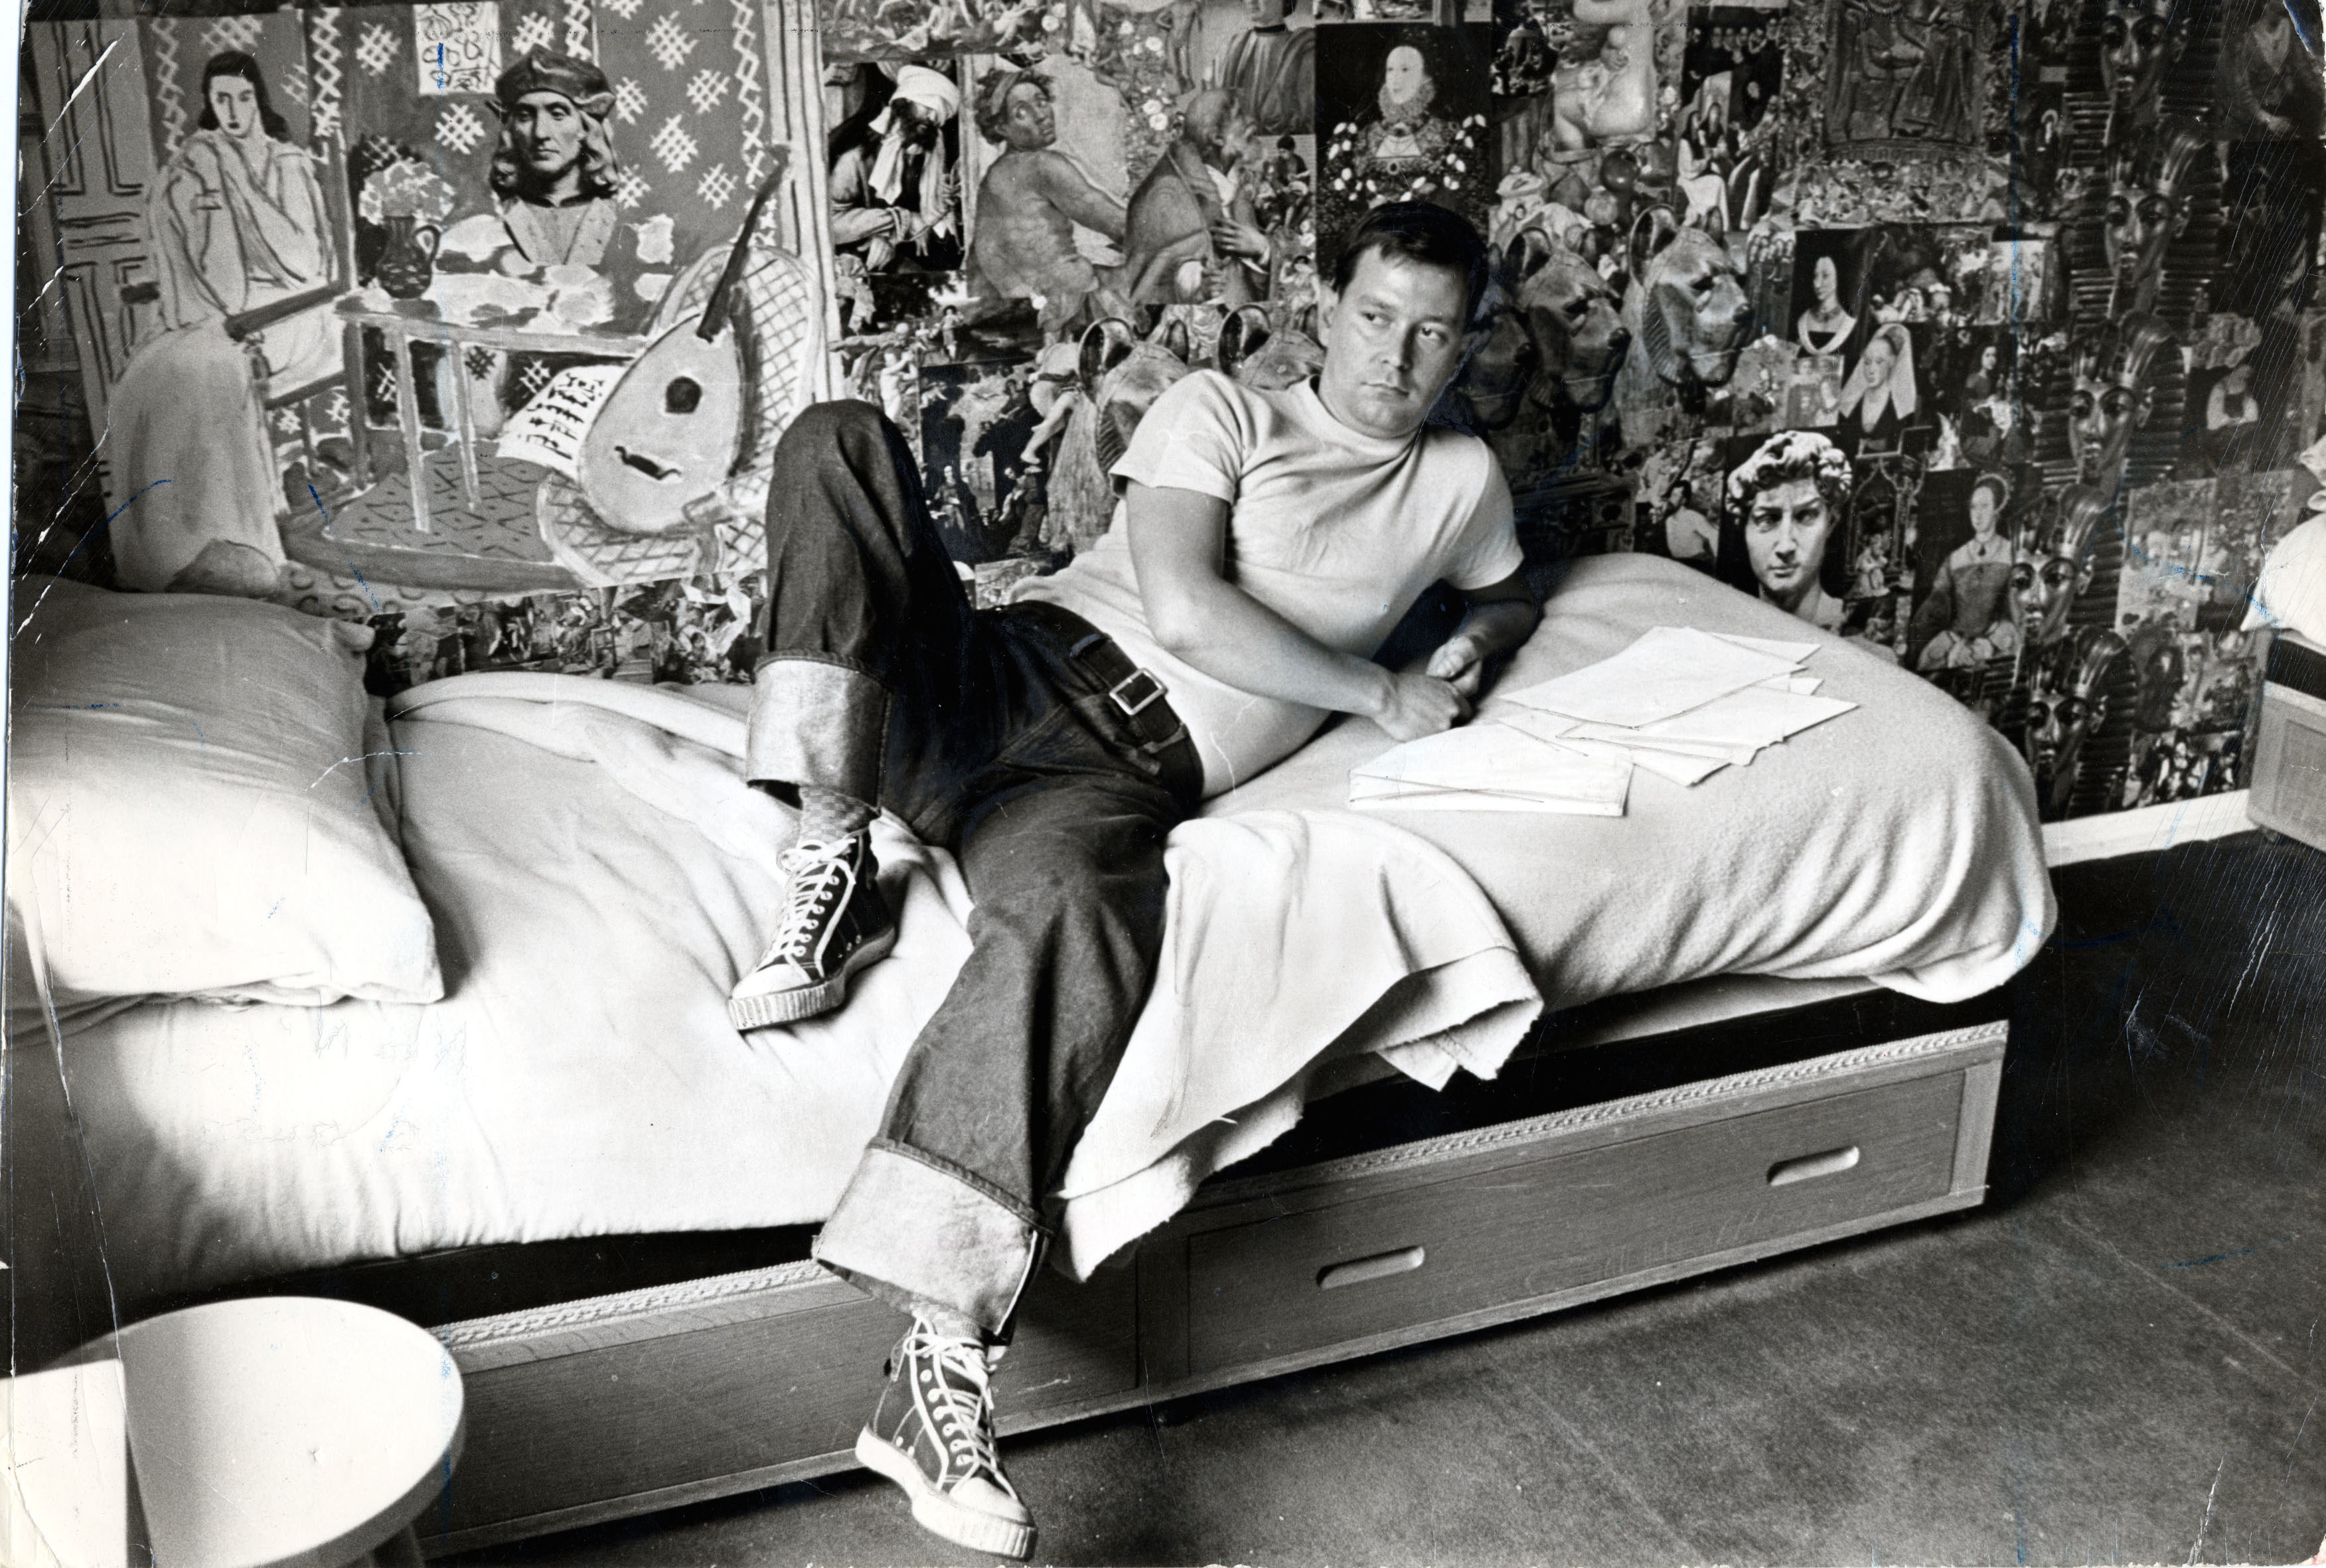 Joe Orton Playwright Murdered By His Lover Kenneth Halliwell At Their Islington Home In 1967. Pictured At His Islington Home. Joe Orton Playwright Murdered By His Lover Kenneth Halliwell At Their Islington Home In 1967. Pictured At His Islington Home.